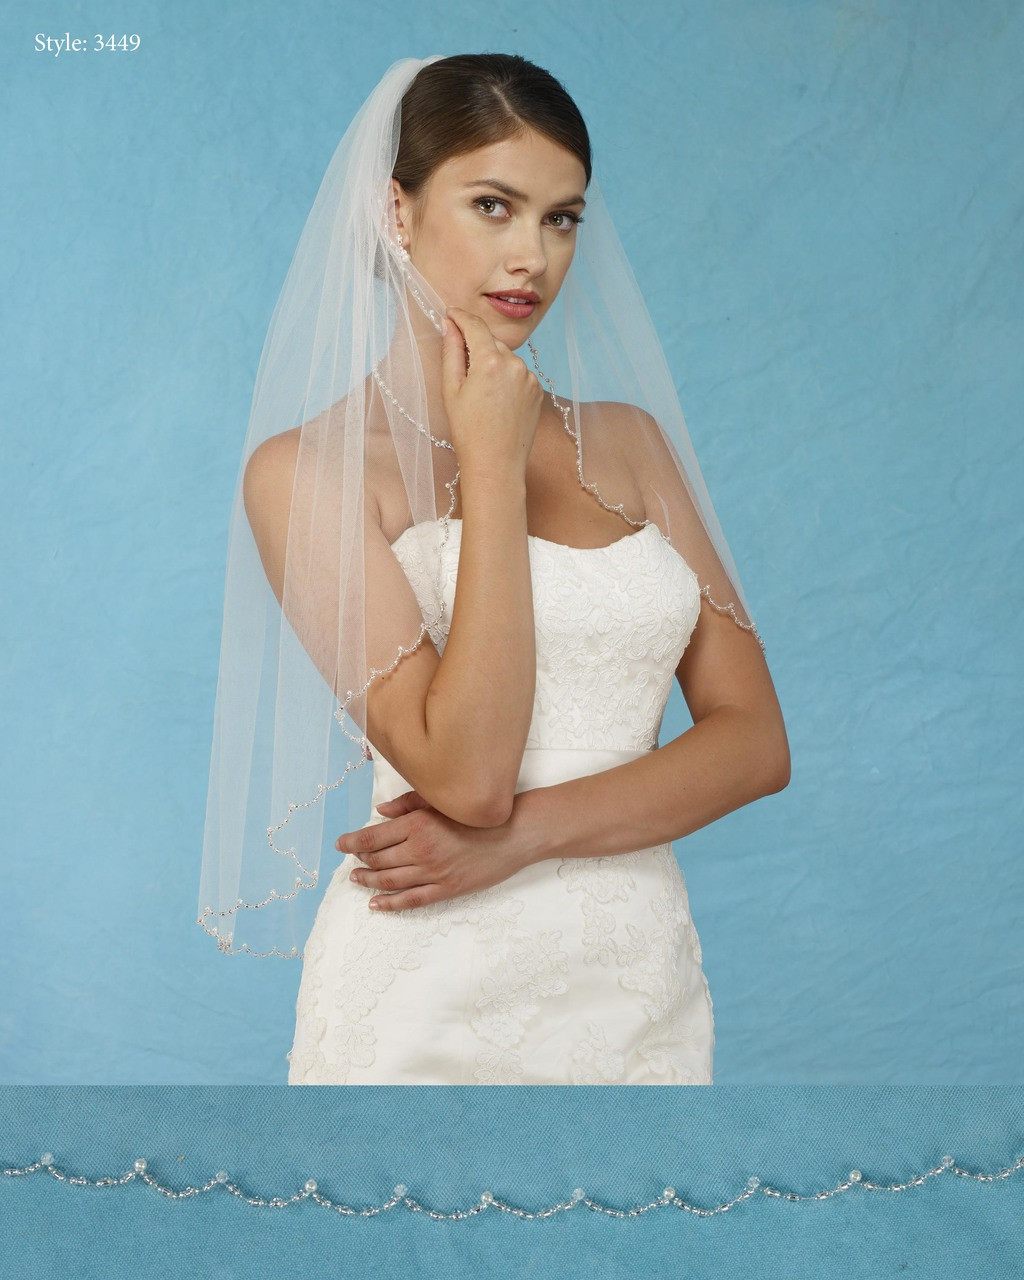 Bridal Veils 3449 - Scalloped Veil with Beads Pearls and Crystals ...